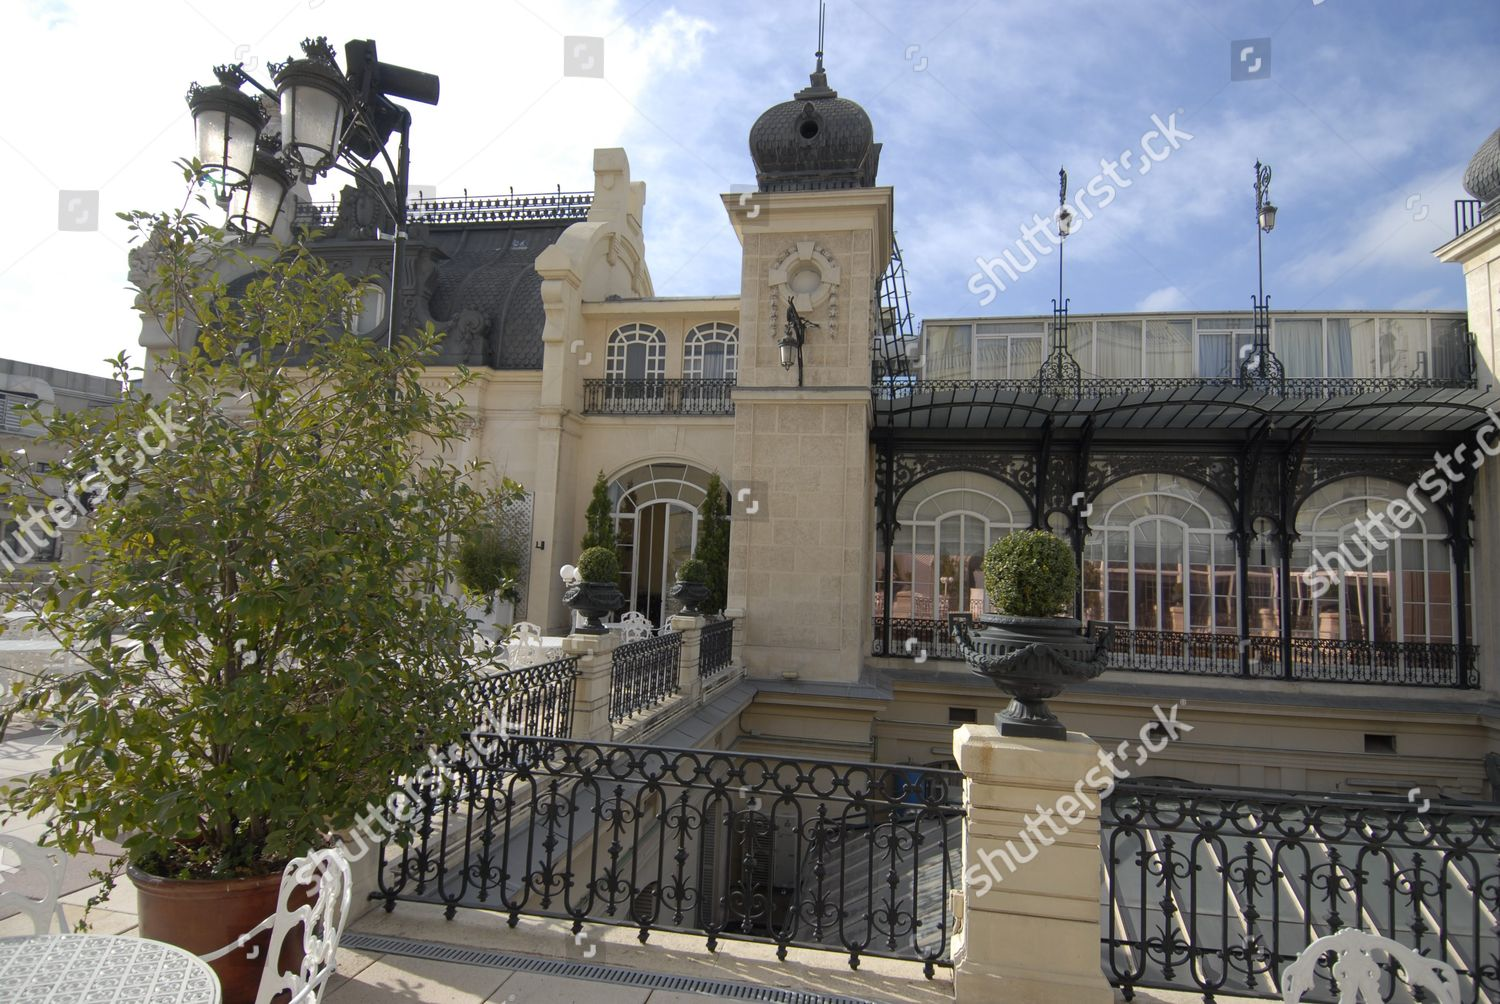 La Terraza Del Casino Madrid Spain Foto Editorial En Stock